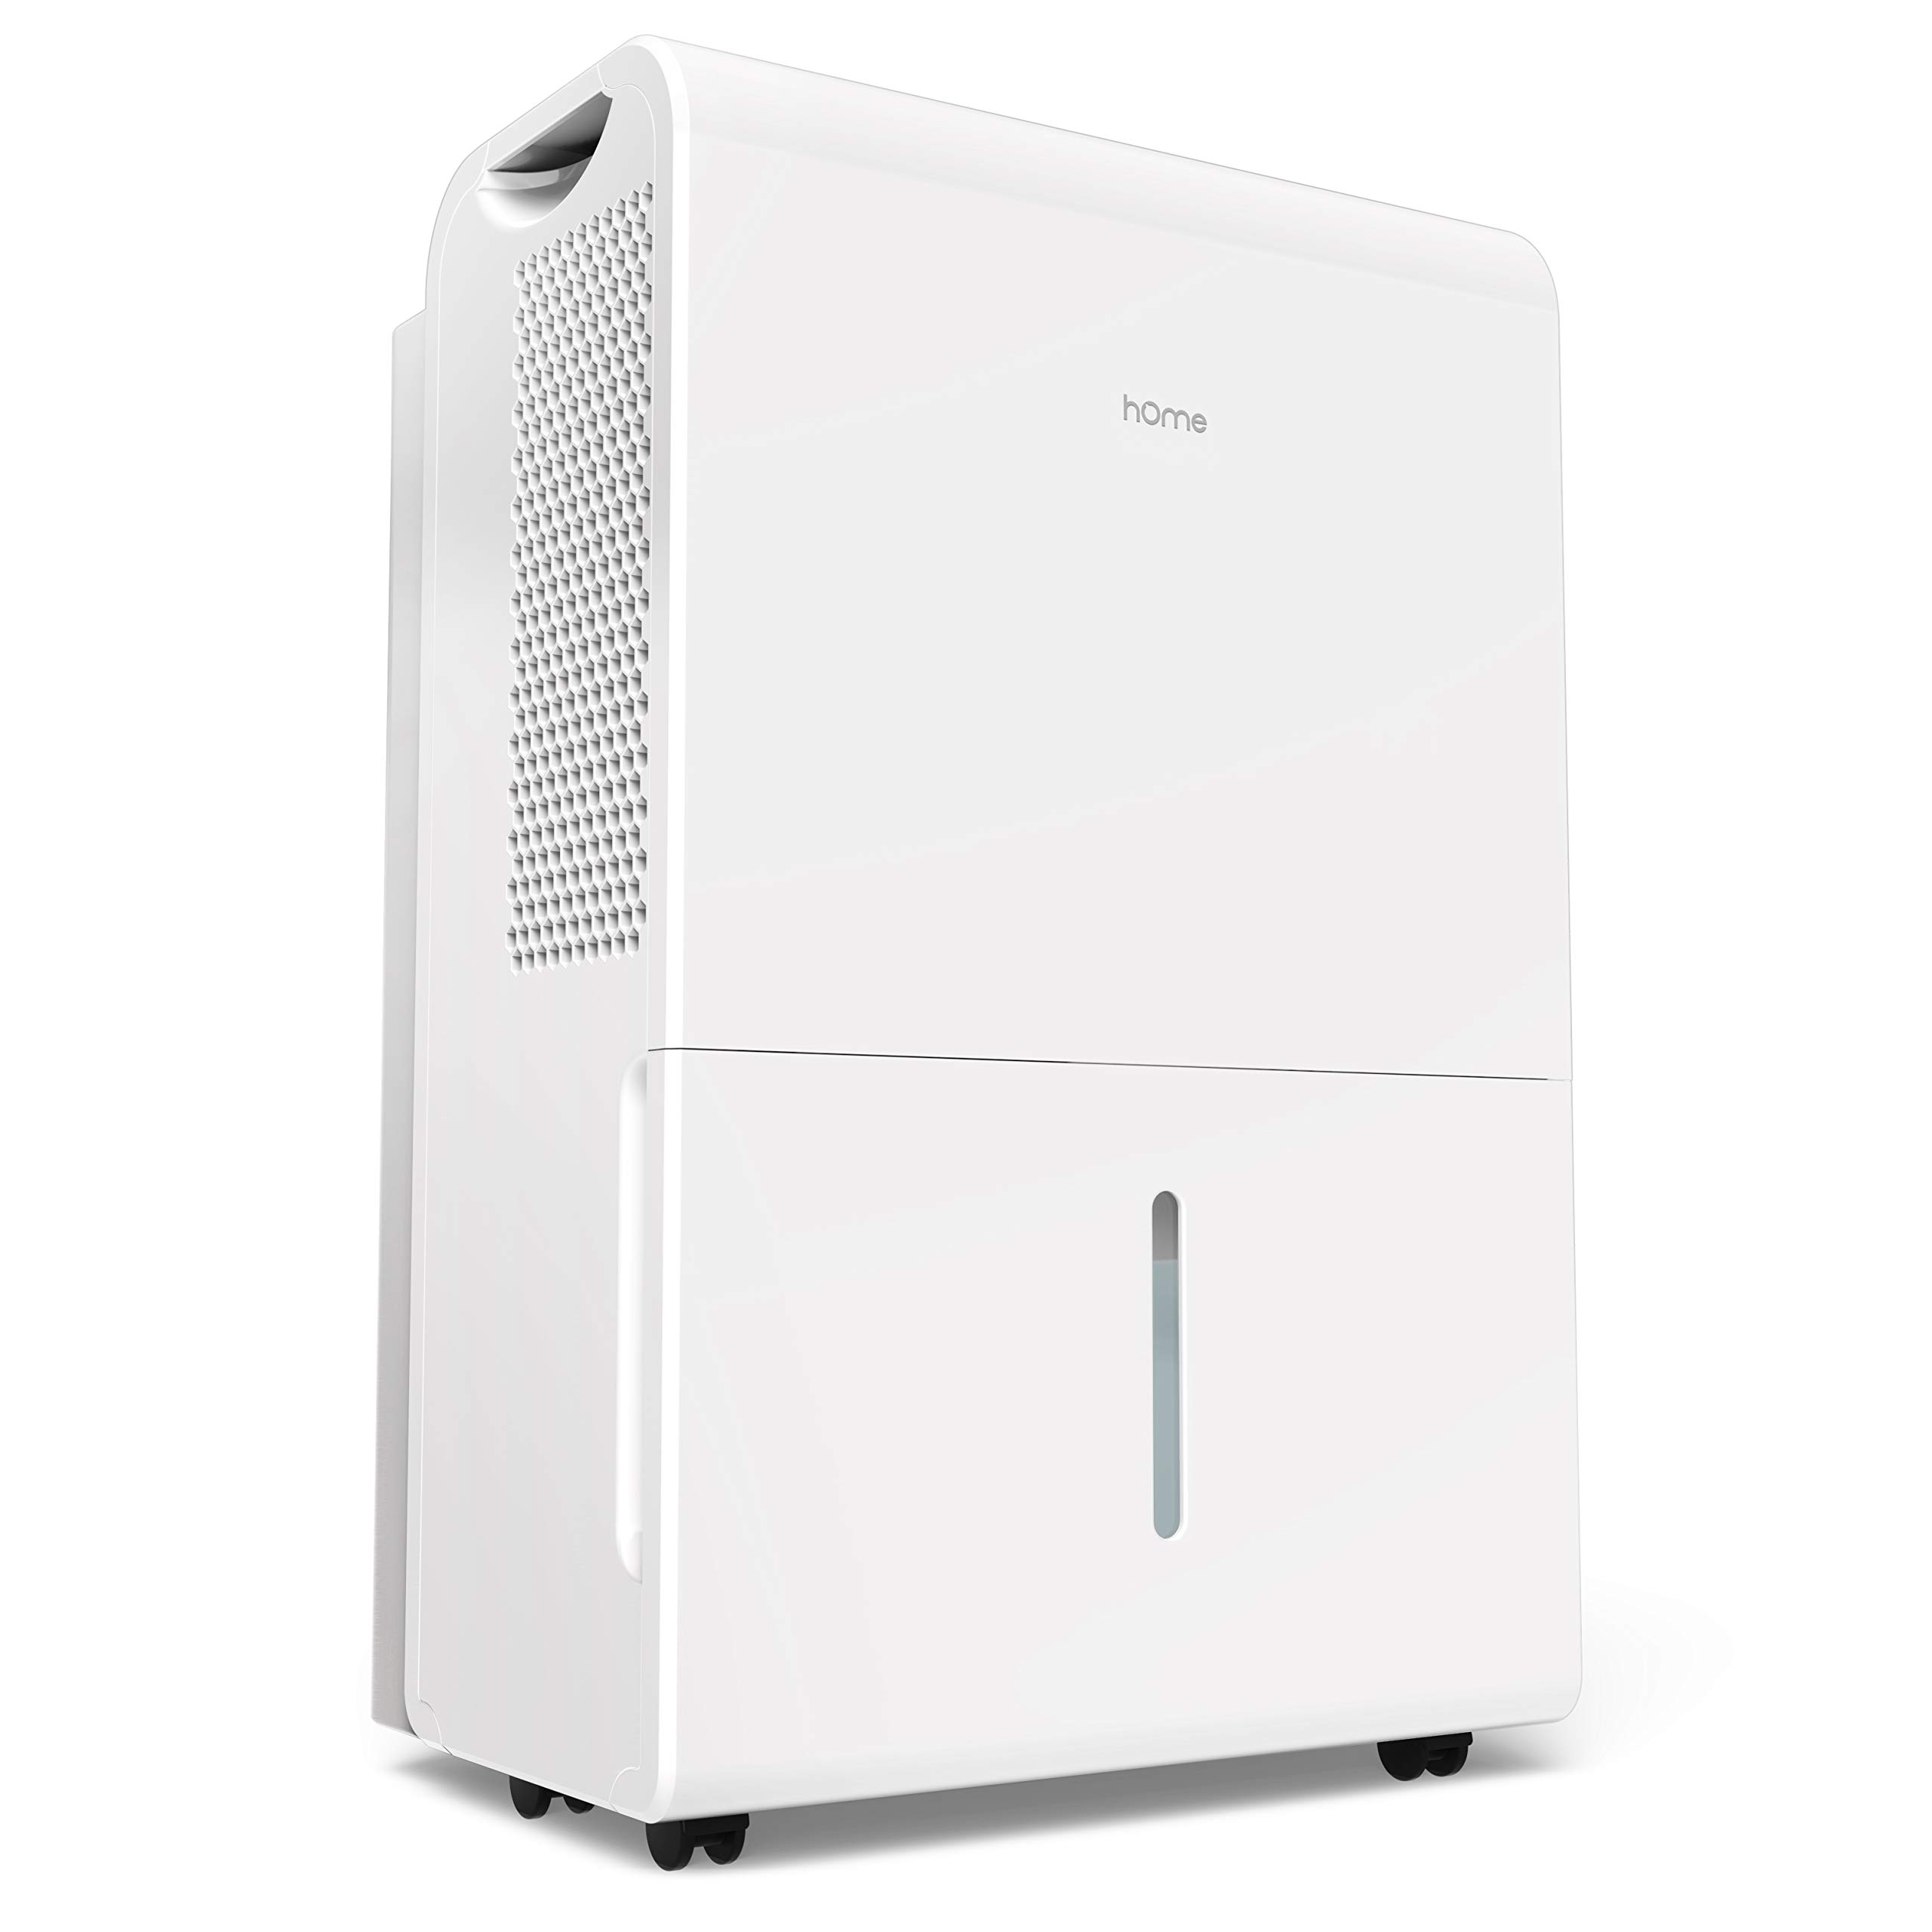 hOmeLabs 4000 Sq Ft Dehumidifier 70 Pint Energy Star Safe Mid Size Portable Dehumidifiers for Basements & Large Rooms with Fan Wheels and Continuous Drain Hose Outlet to Remove Odor